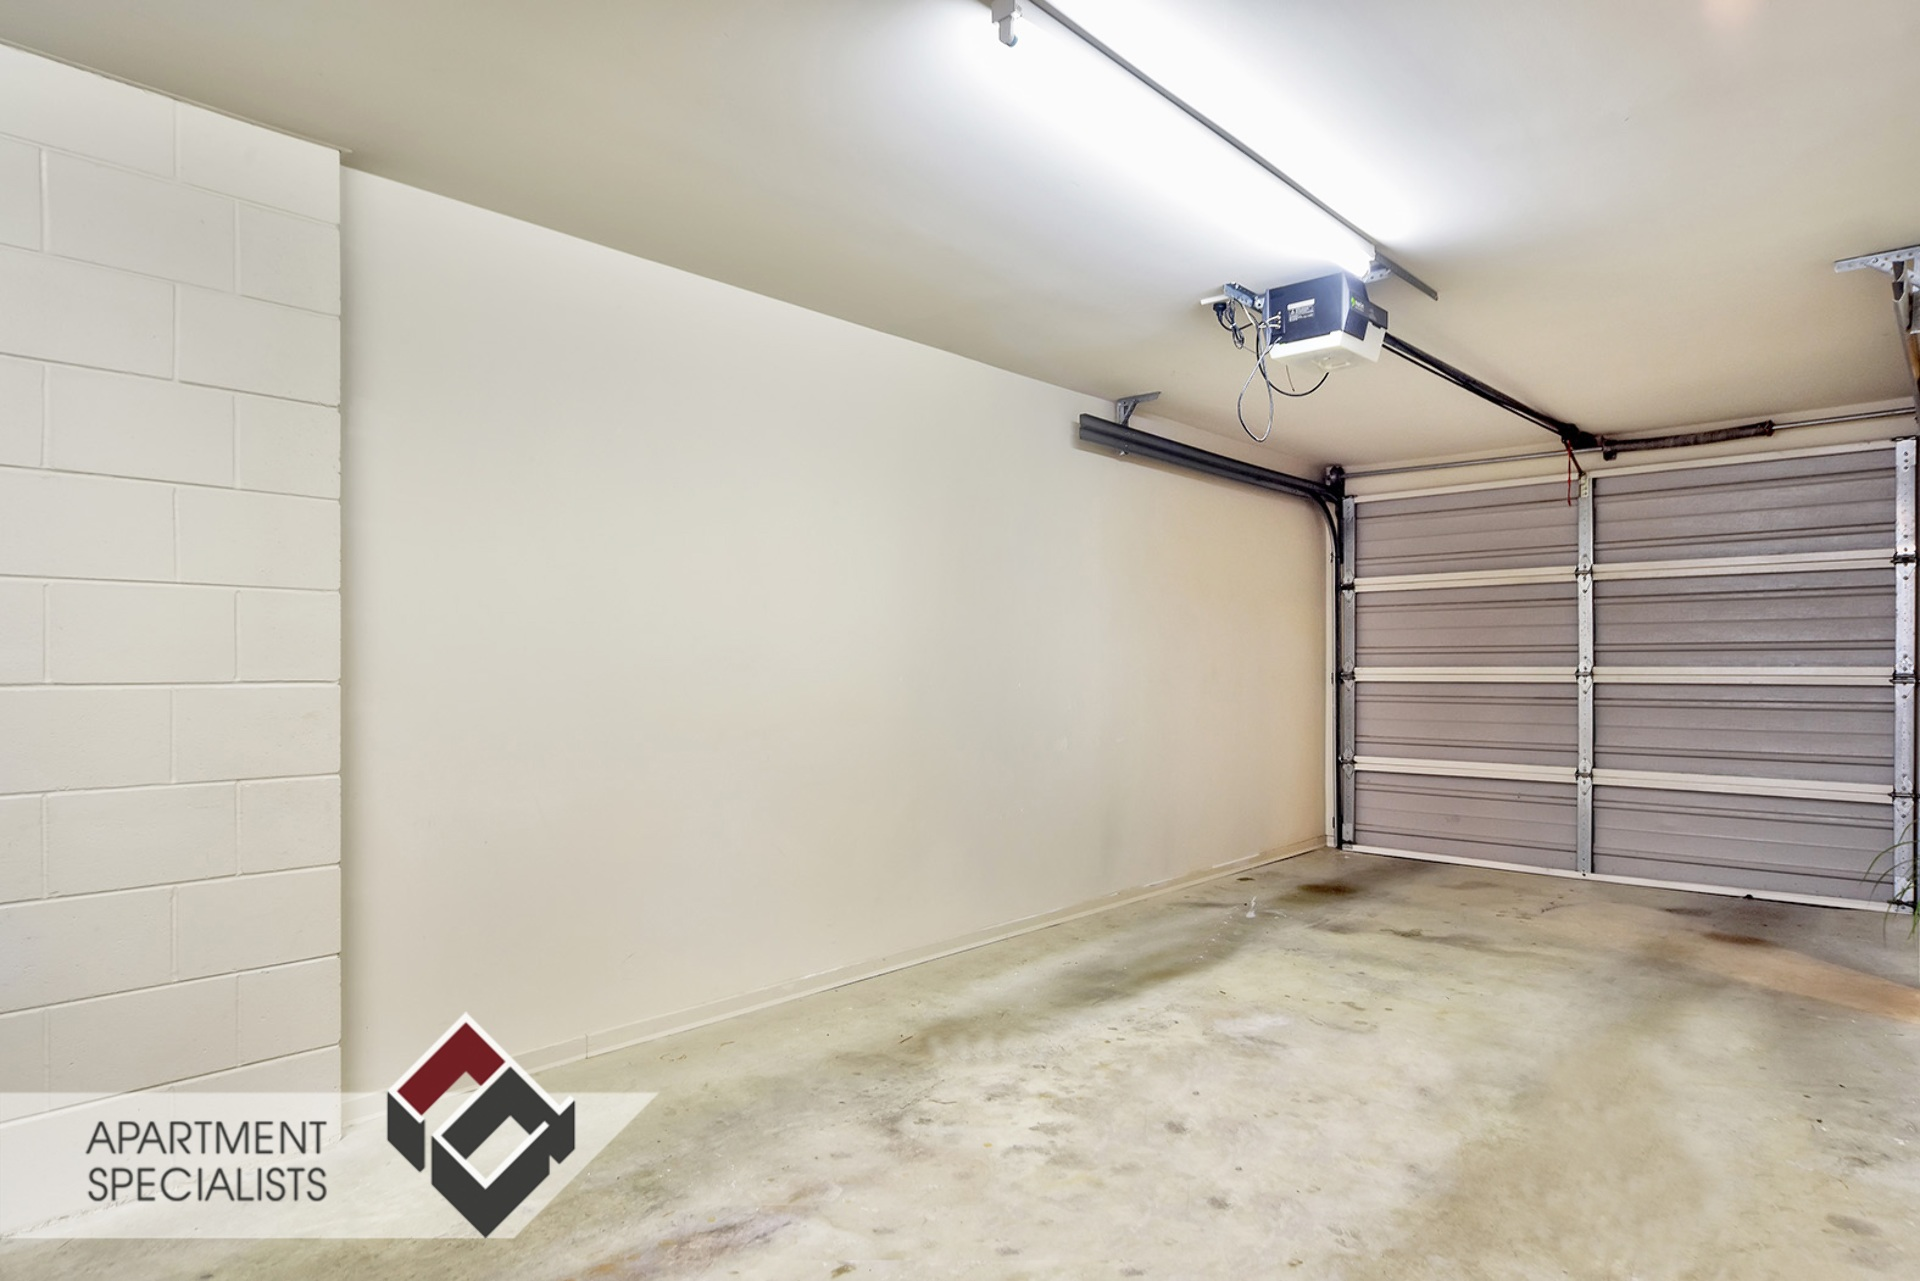 10 | 21 Hunters Park Drive, Three Kings | Apartment Specialists